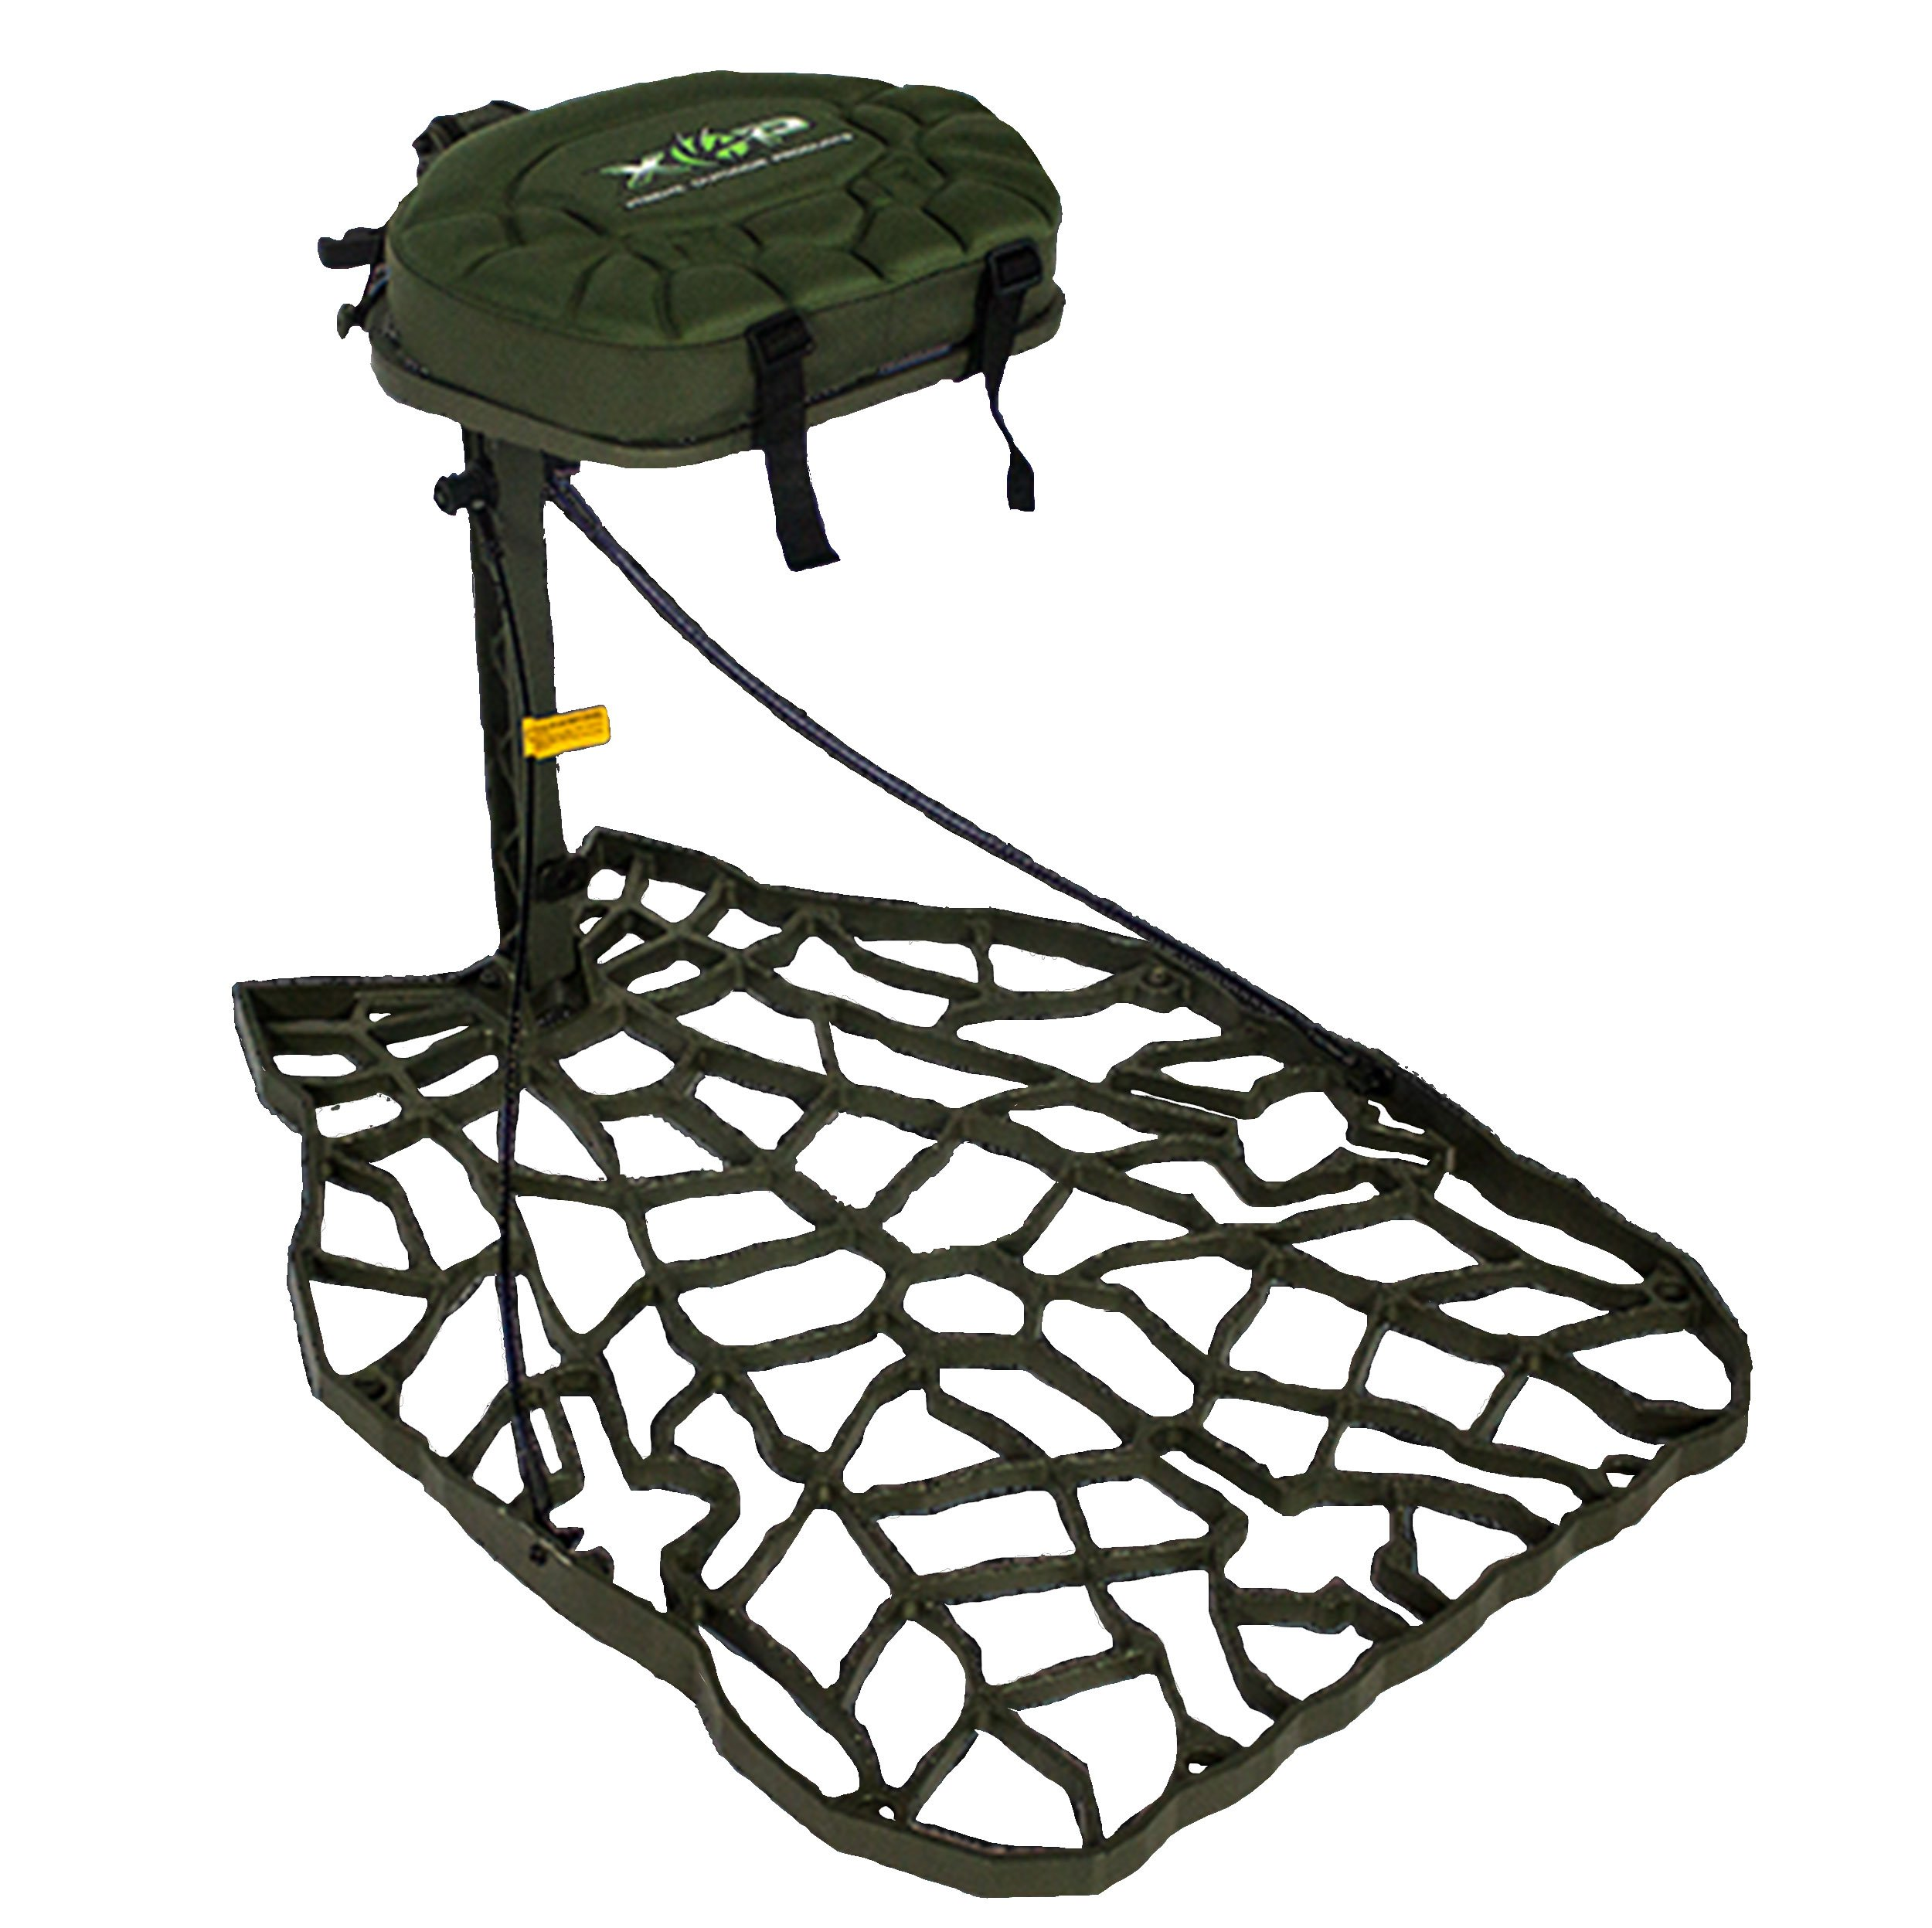 XOP-XTREME OUTDOOR PRODUCTS Maximus Tree Stand, Green by XOP-XTREME OUTDOOR PRODUCTS (Image #1)